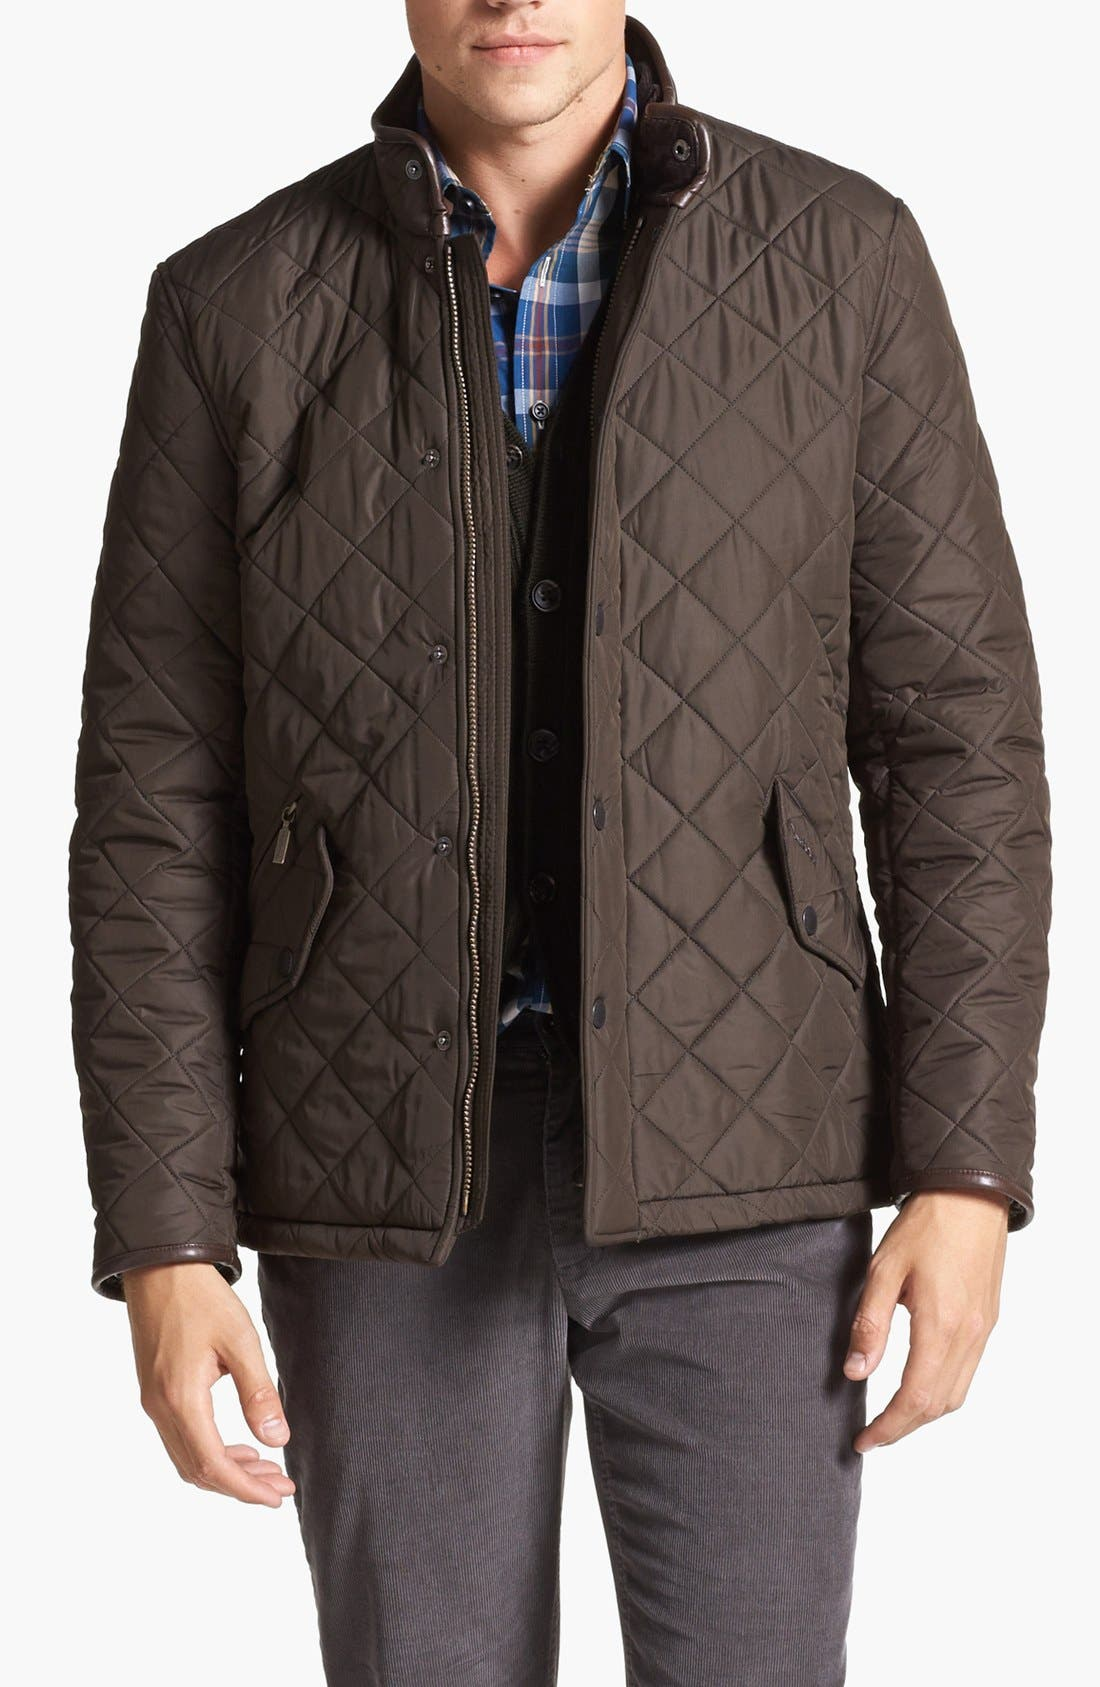 Men's Lightweight Jackets & Windbreakers | Nordstrom